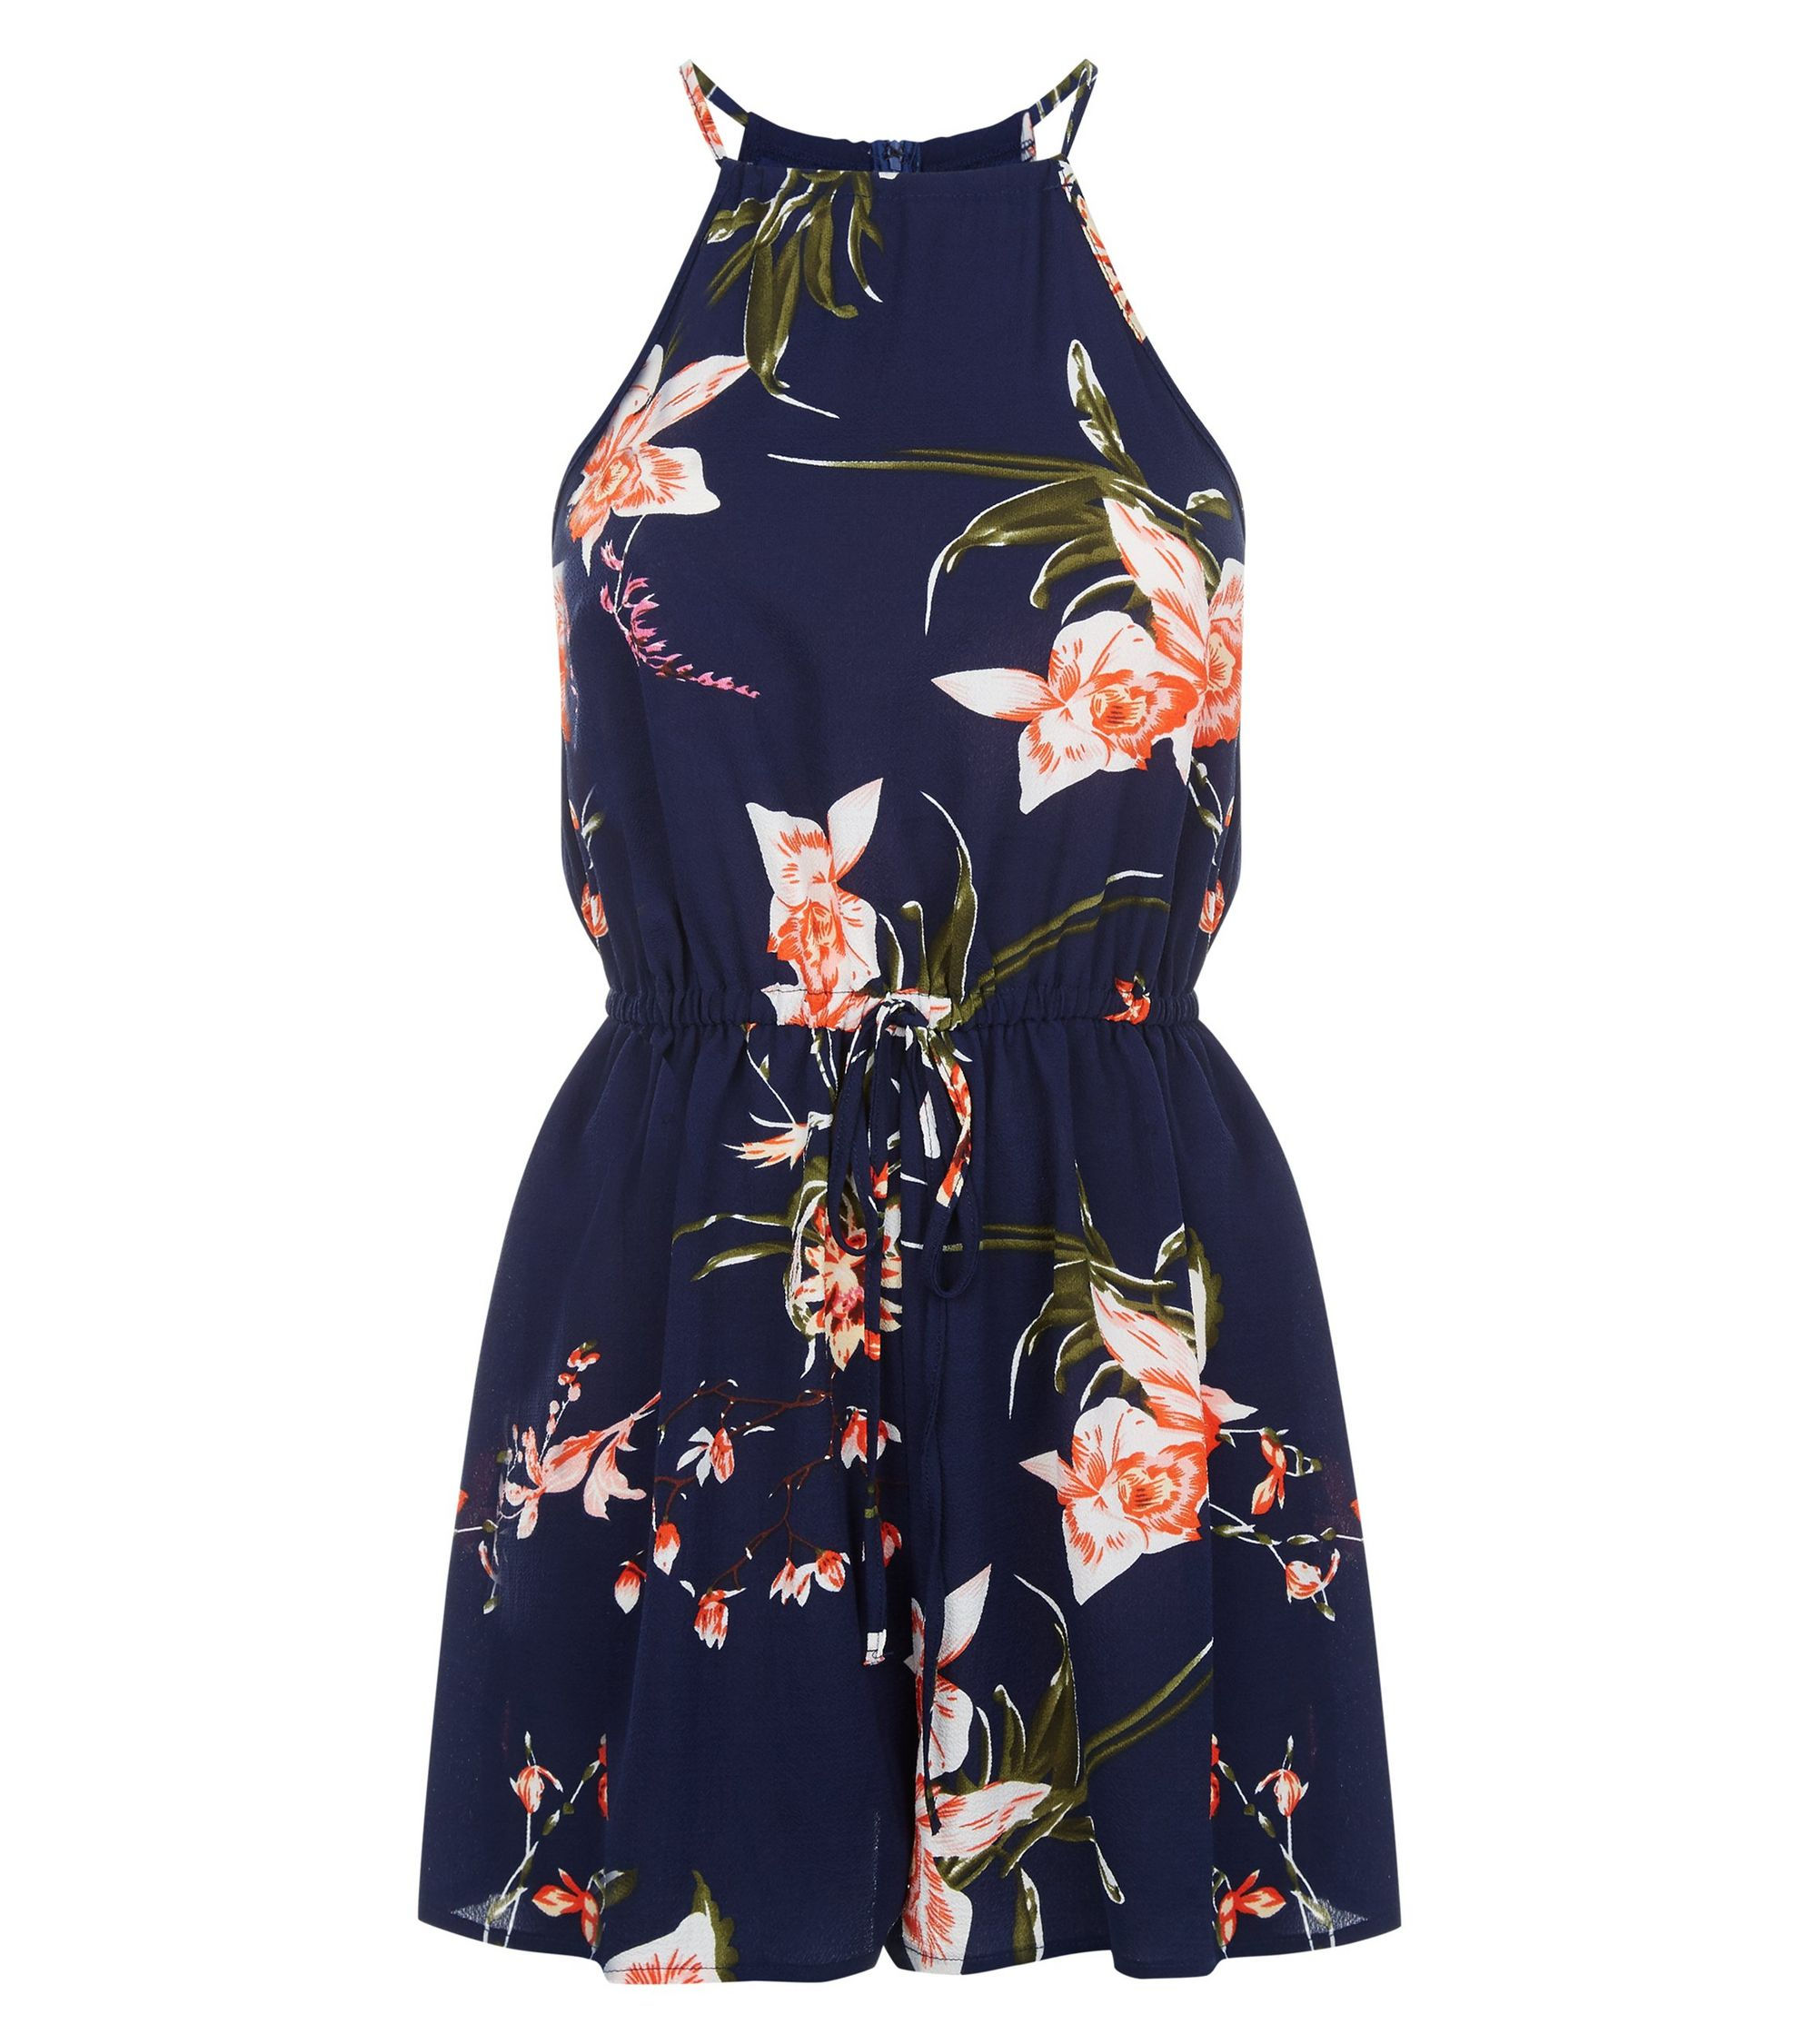 12f2ebd630 New Look AX Paris Navy Floral High Neck Playsuit at £22